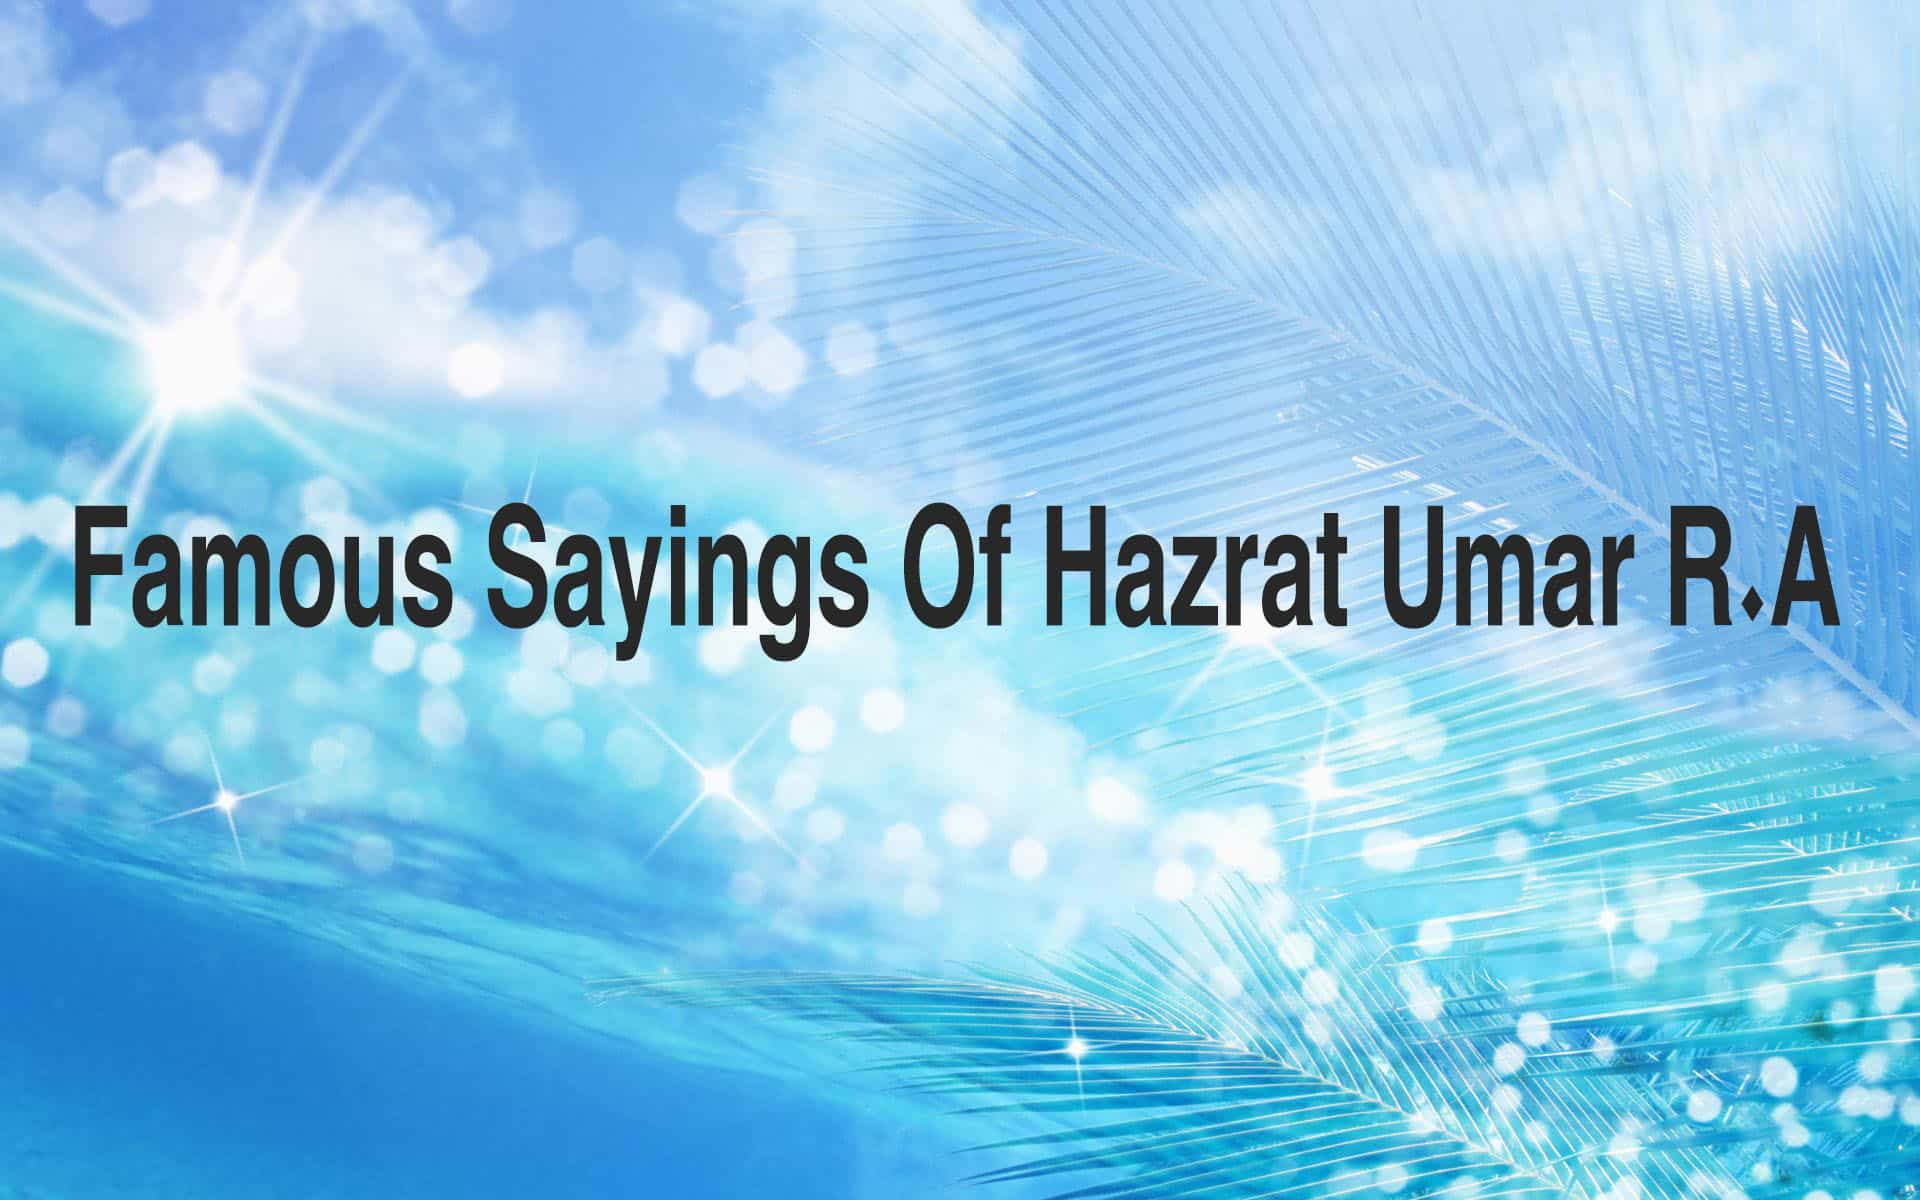 Famous-Sayings-of-Hazrat-umar